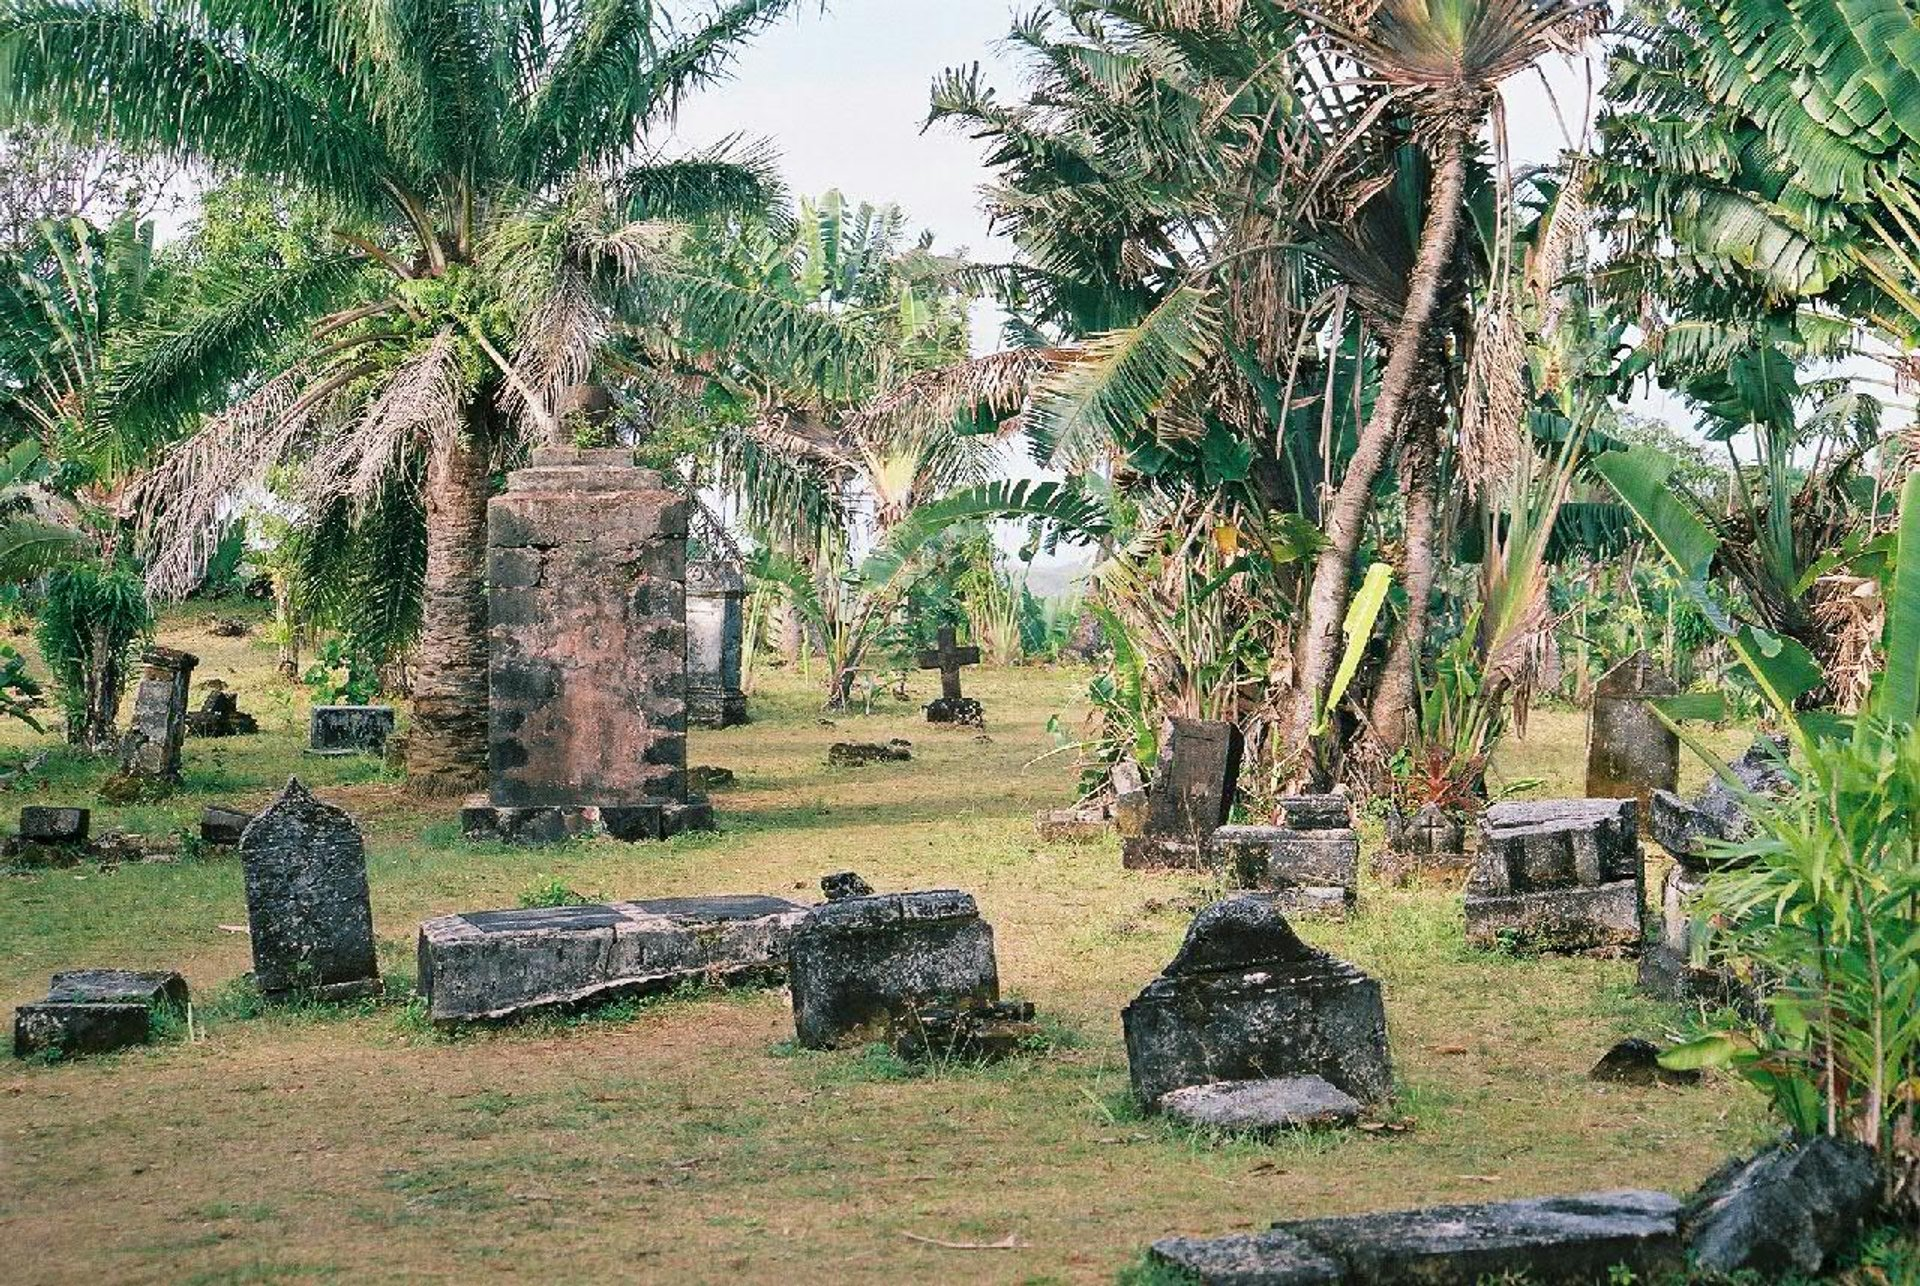 Pirates' Cemetery in Madagascar - Best Season 2020